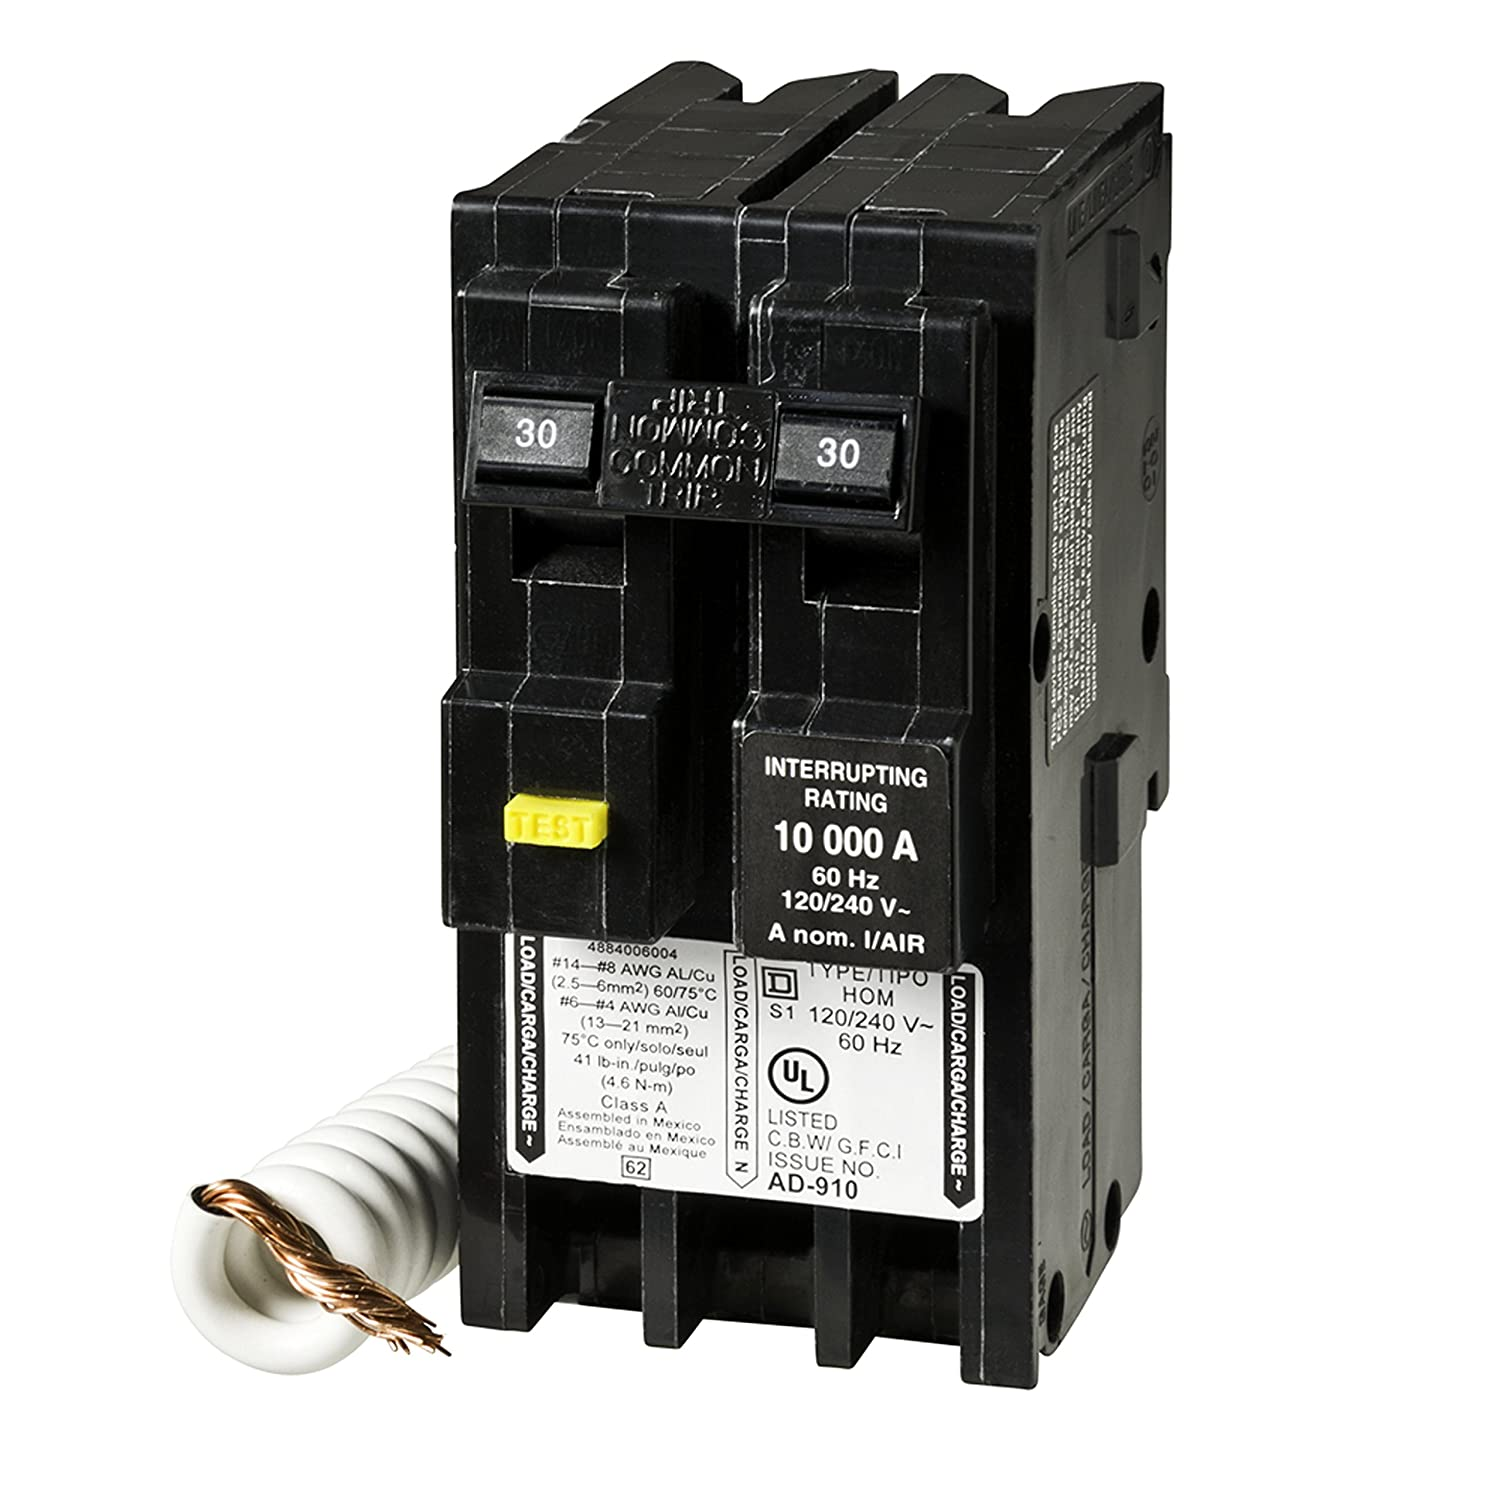 Home Improvement Square D by Schneider Electric HOM230GFIC Homeline 30 Amp Two-Pole GFCI Circuit Breaker Schneider Electric